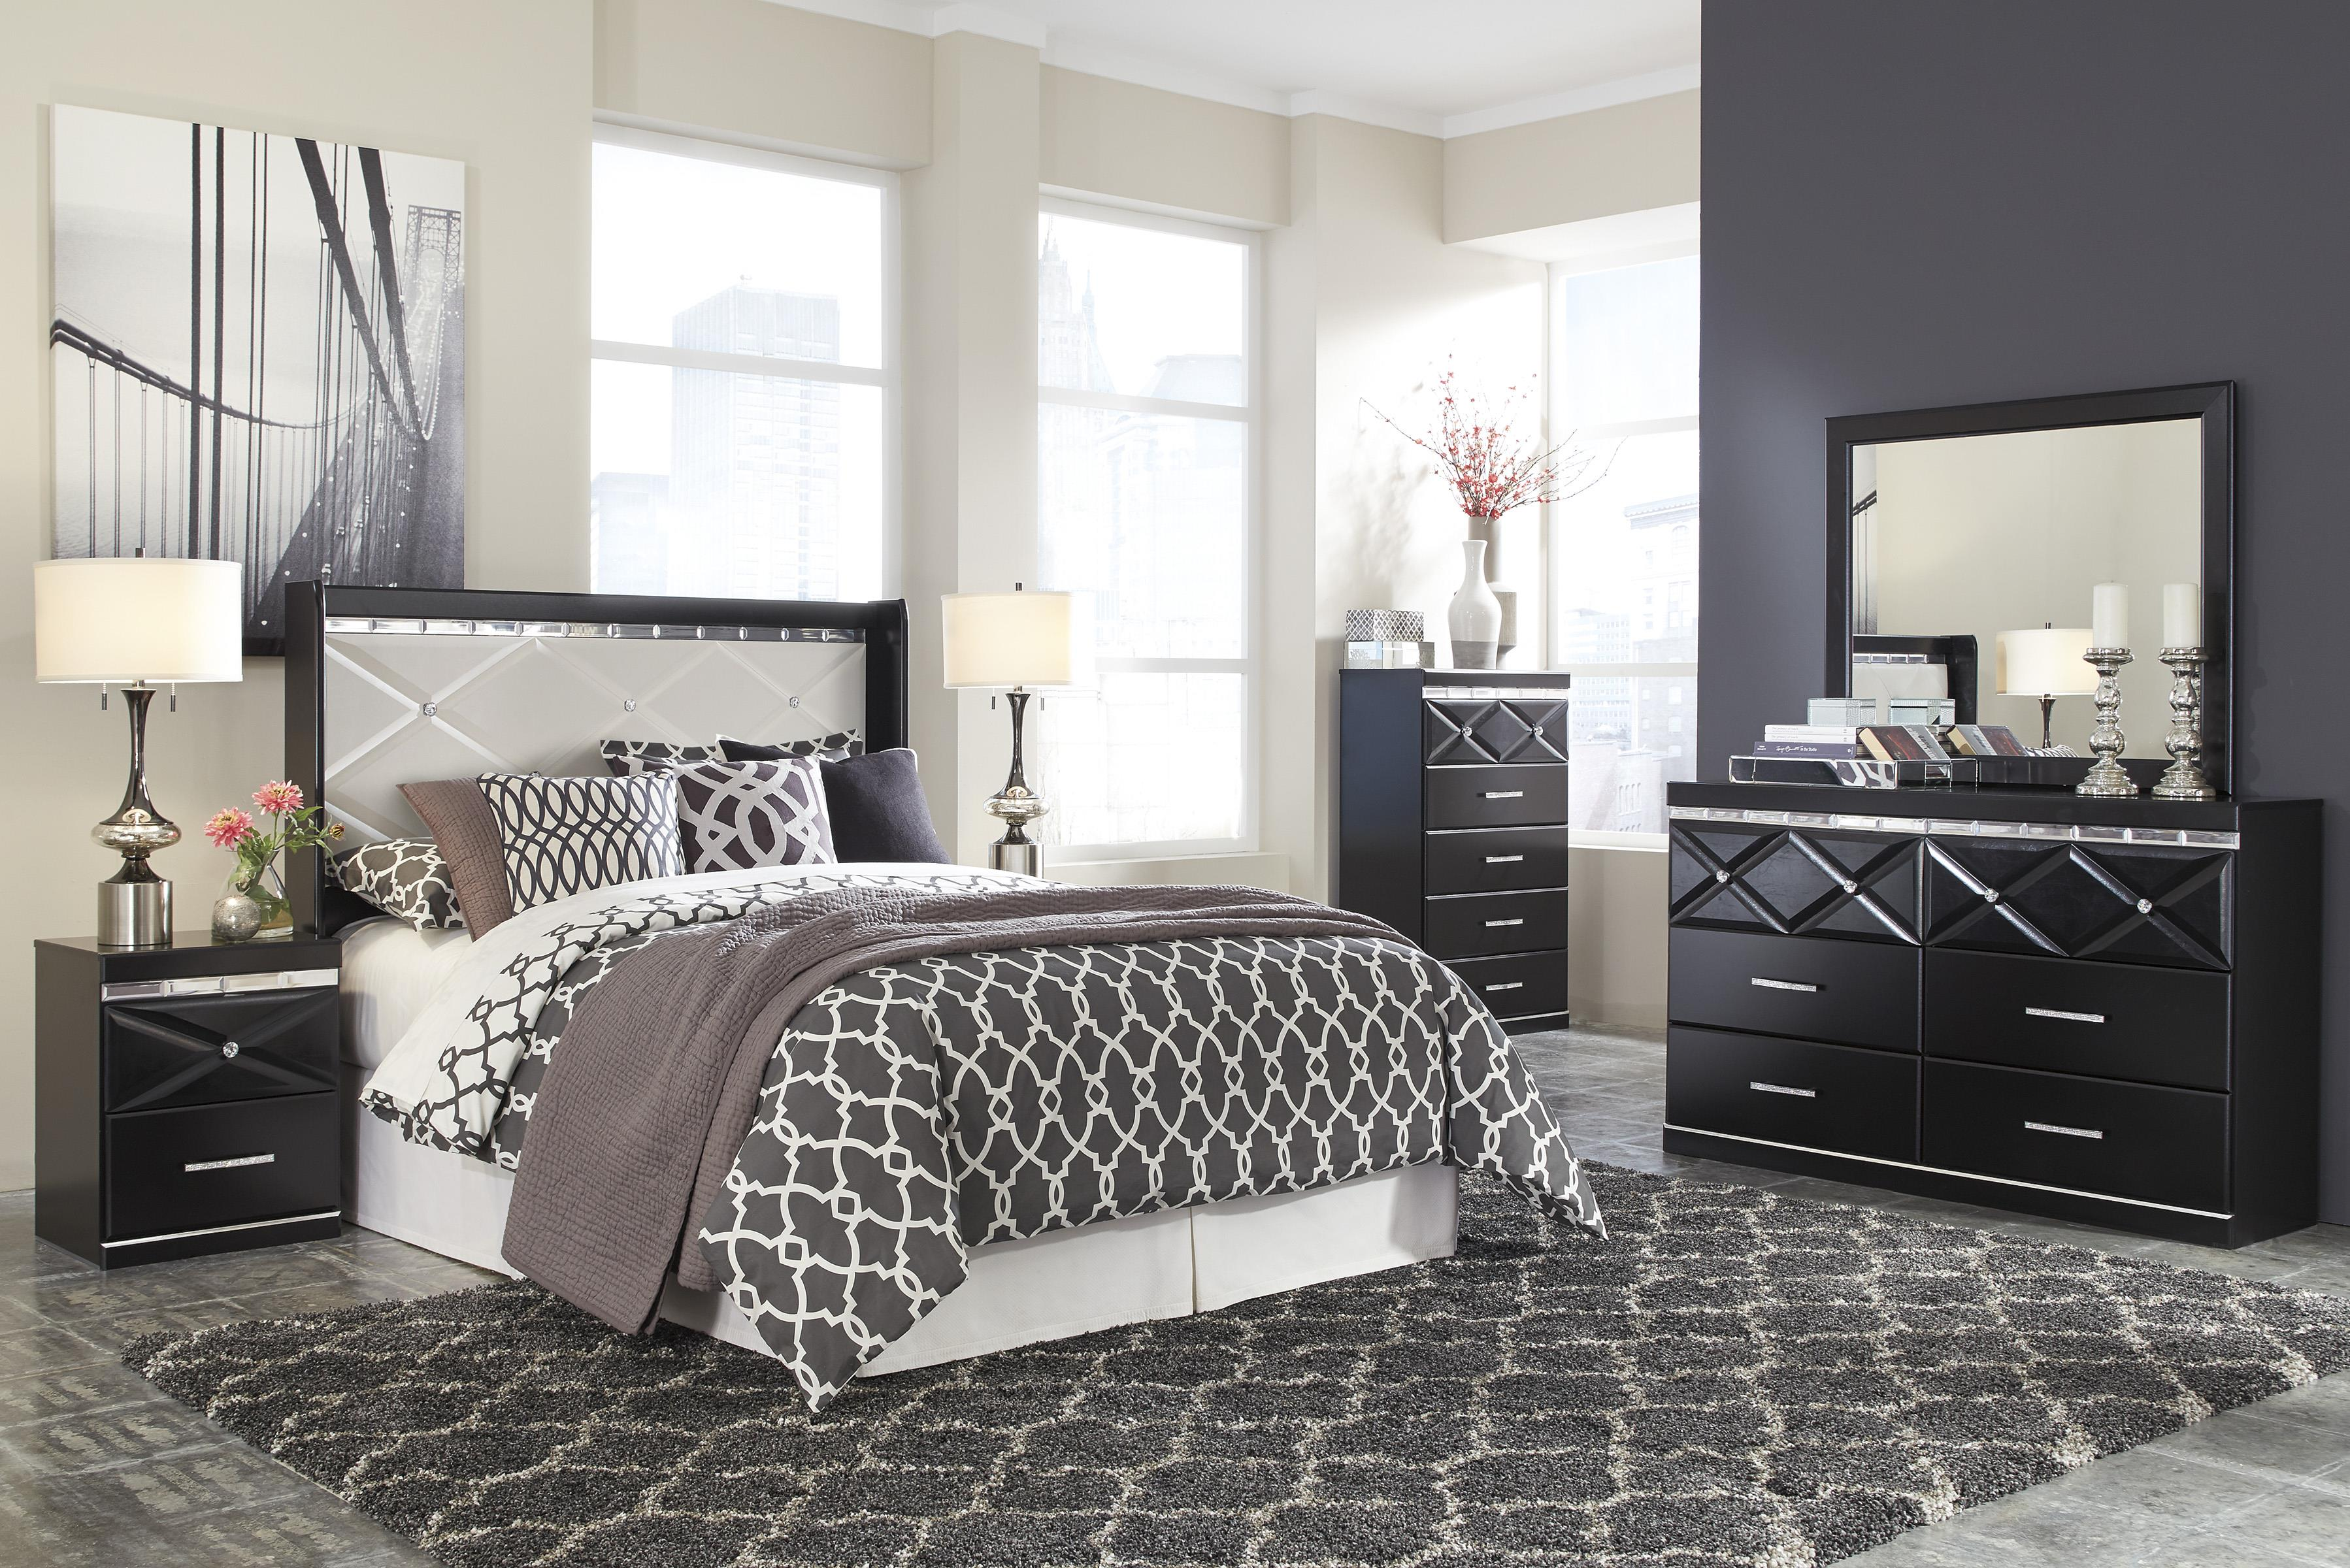 signature design by ashley fancee queen bedroom group beck 39 s furniture bedroom groups. Black Bedroom Furniture Sets. Home Design Ideas